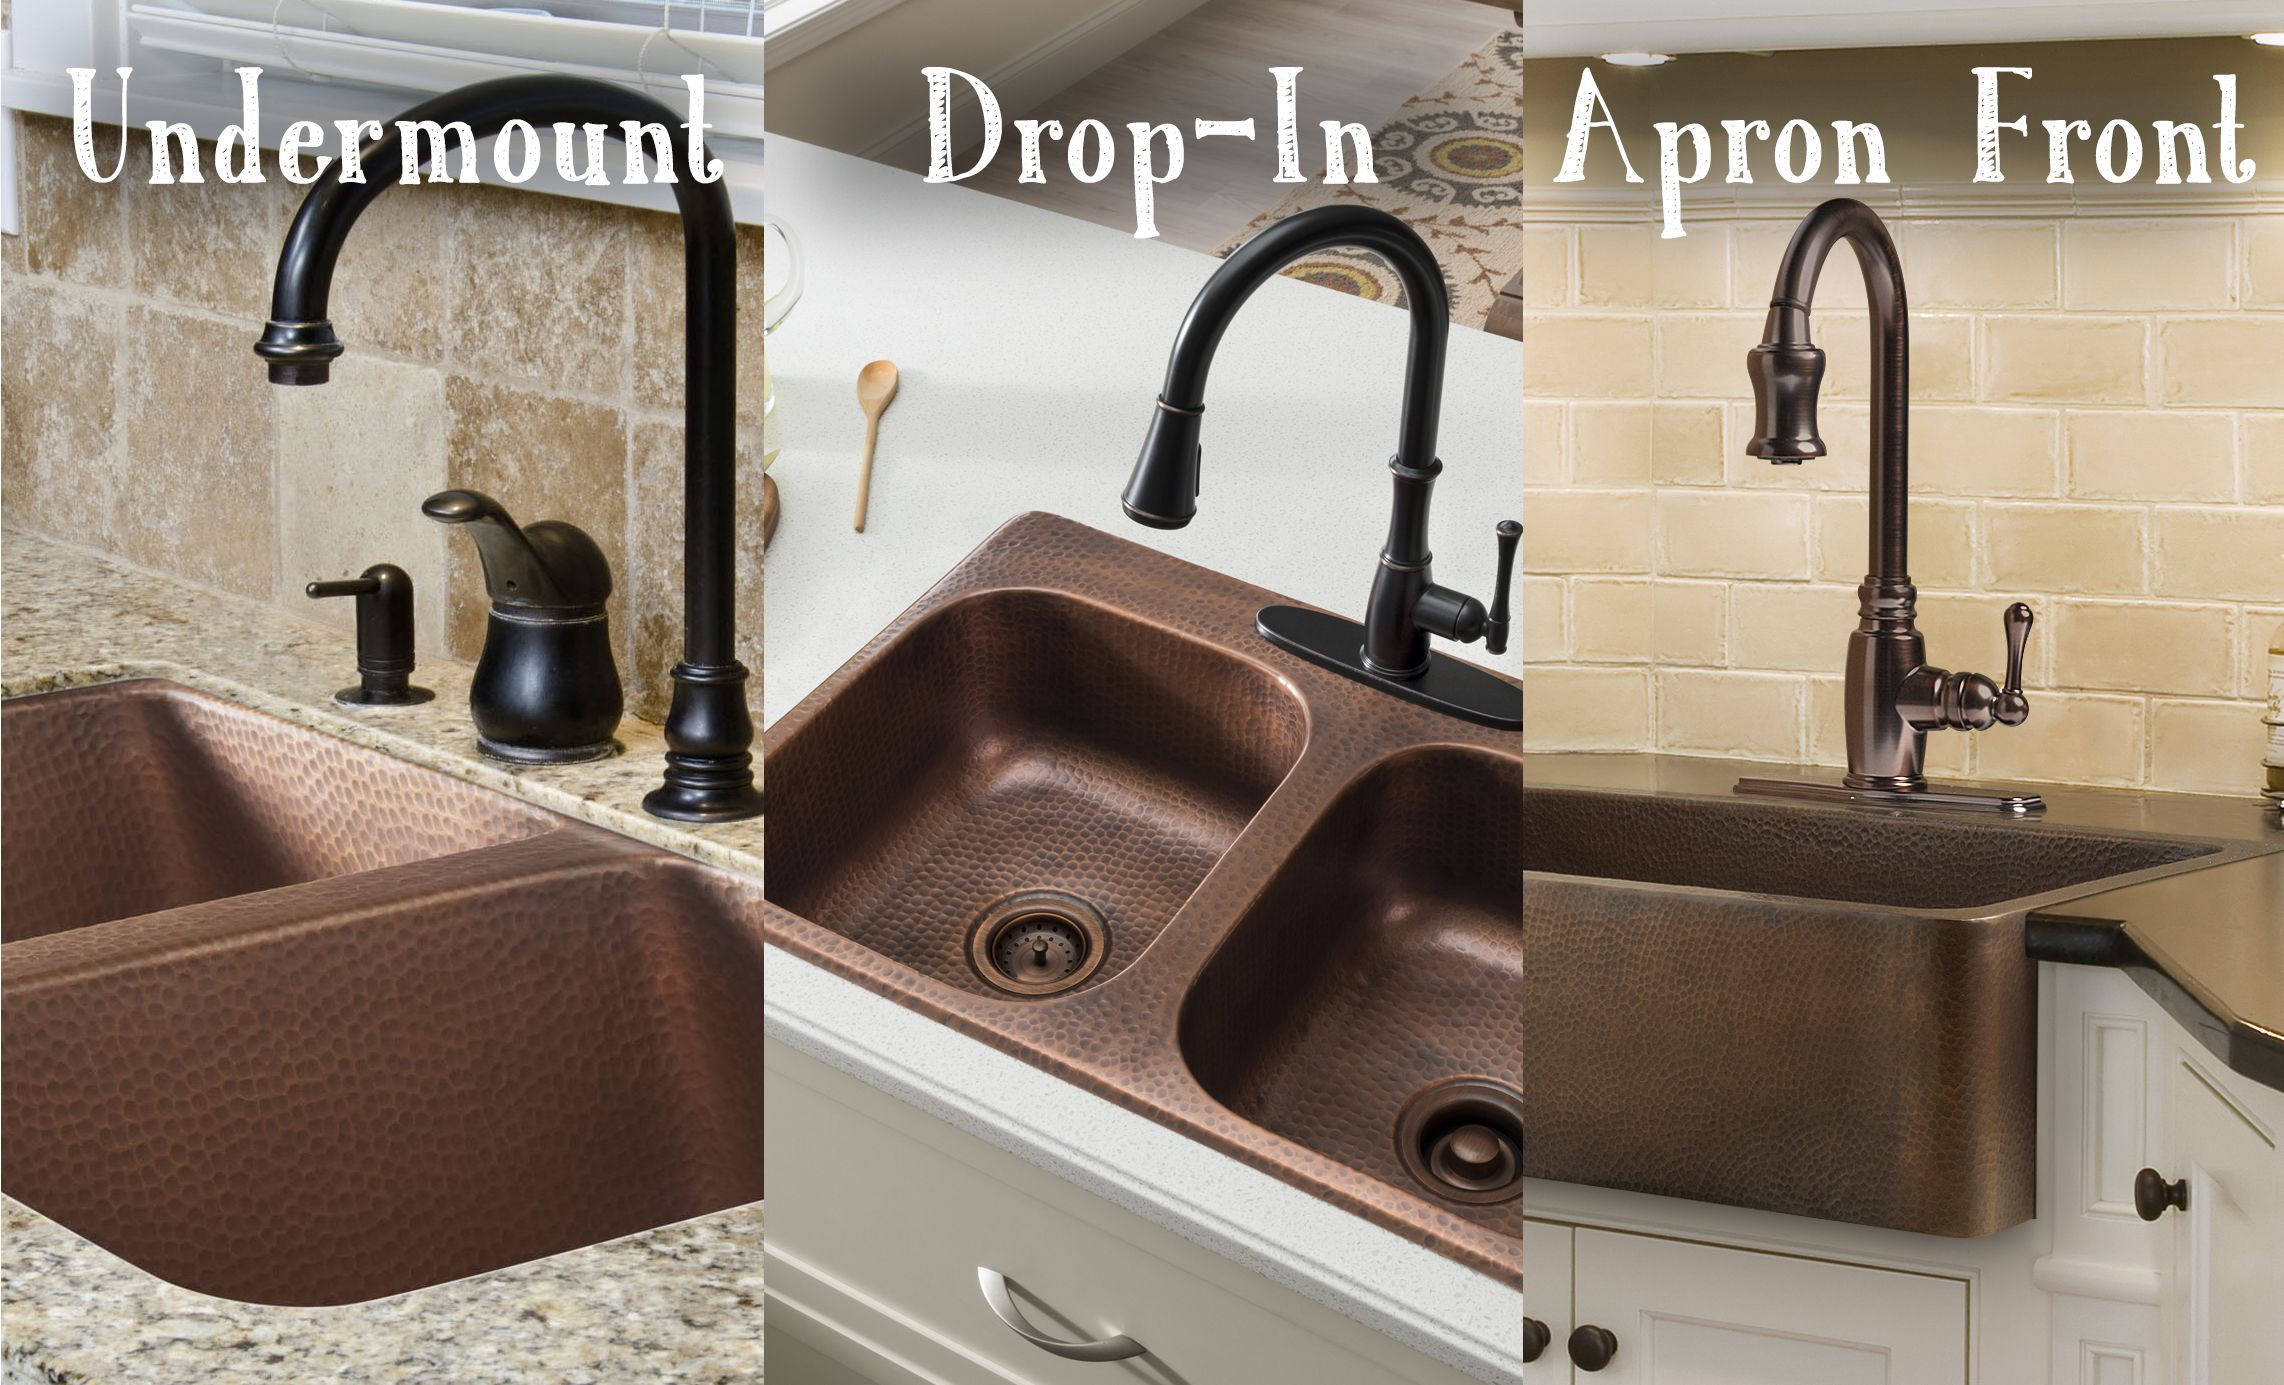 Sinkology copper kitchen sinks are available in dropin